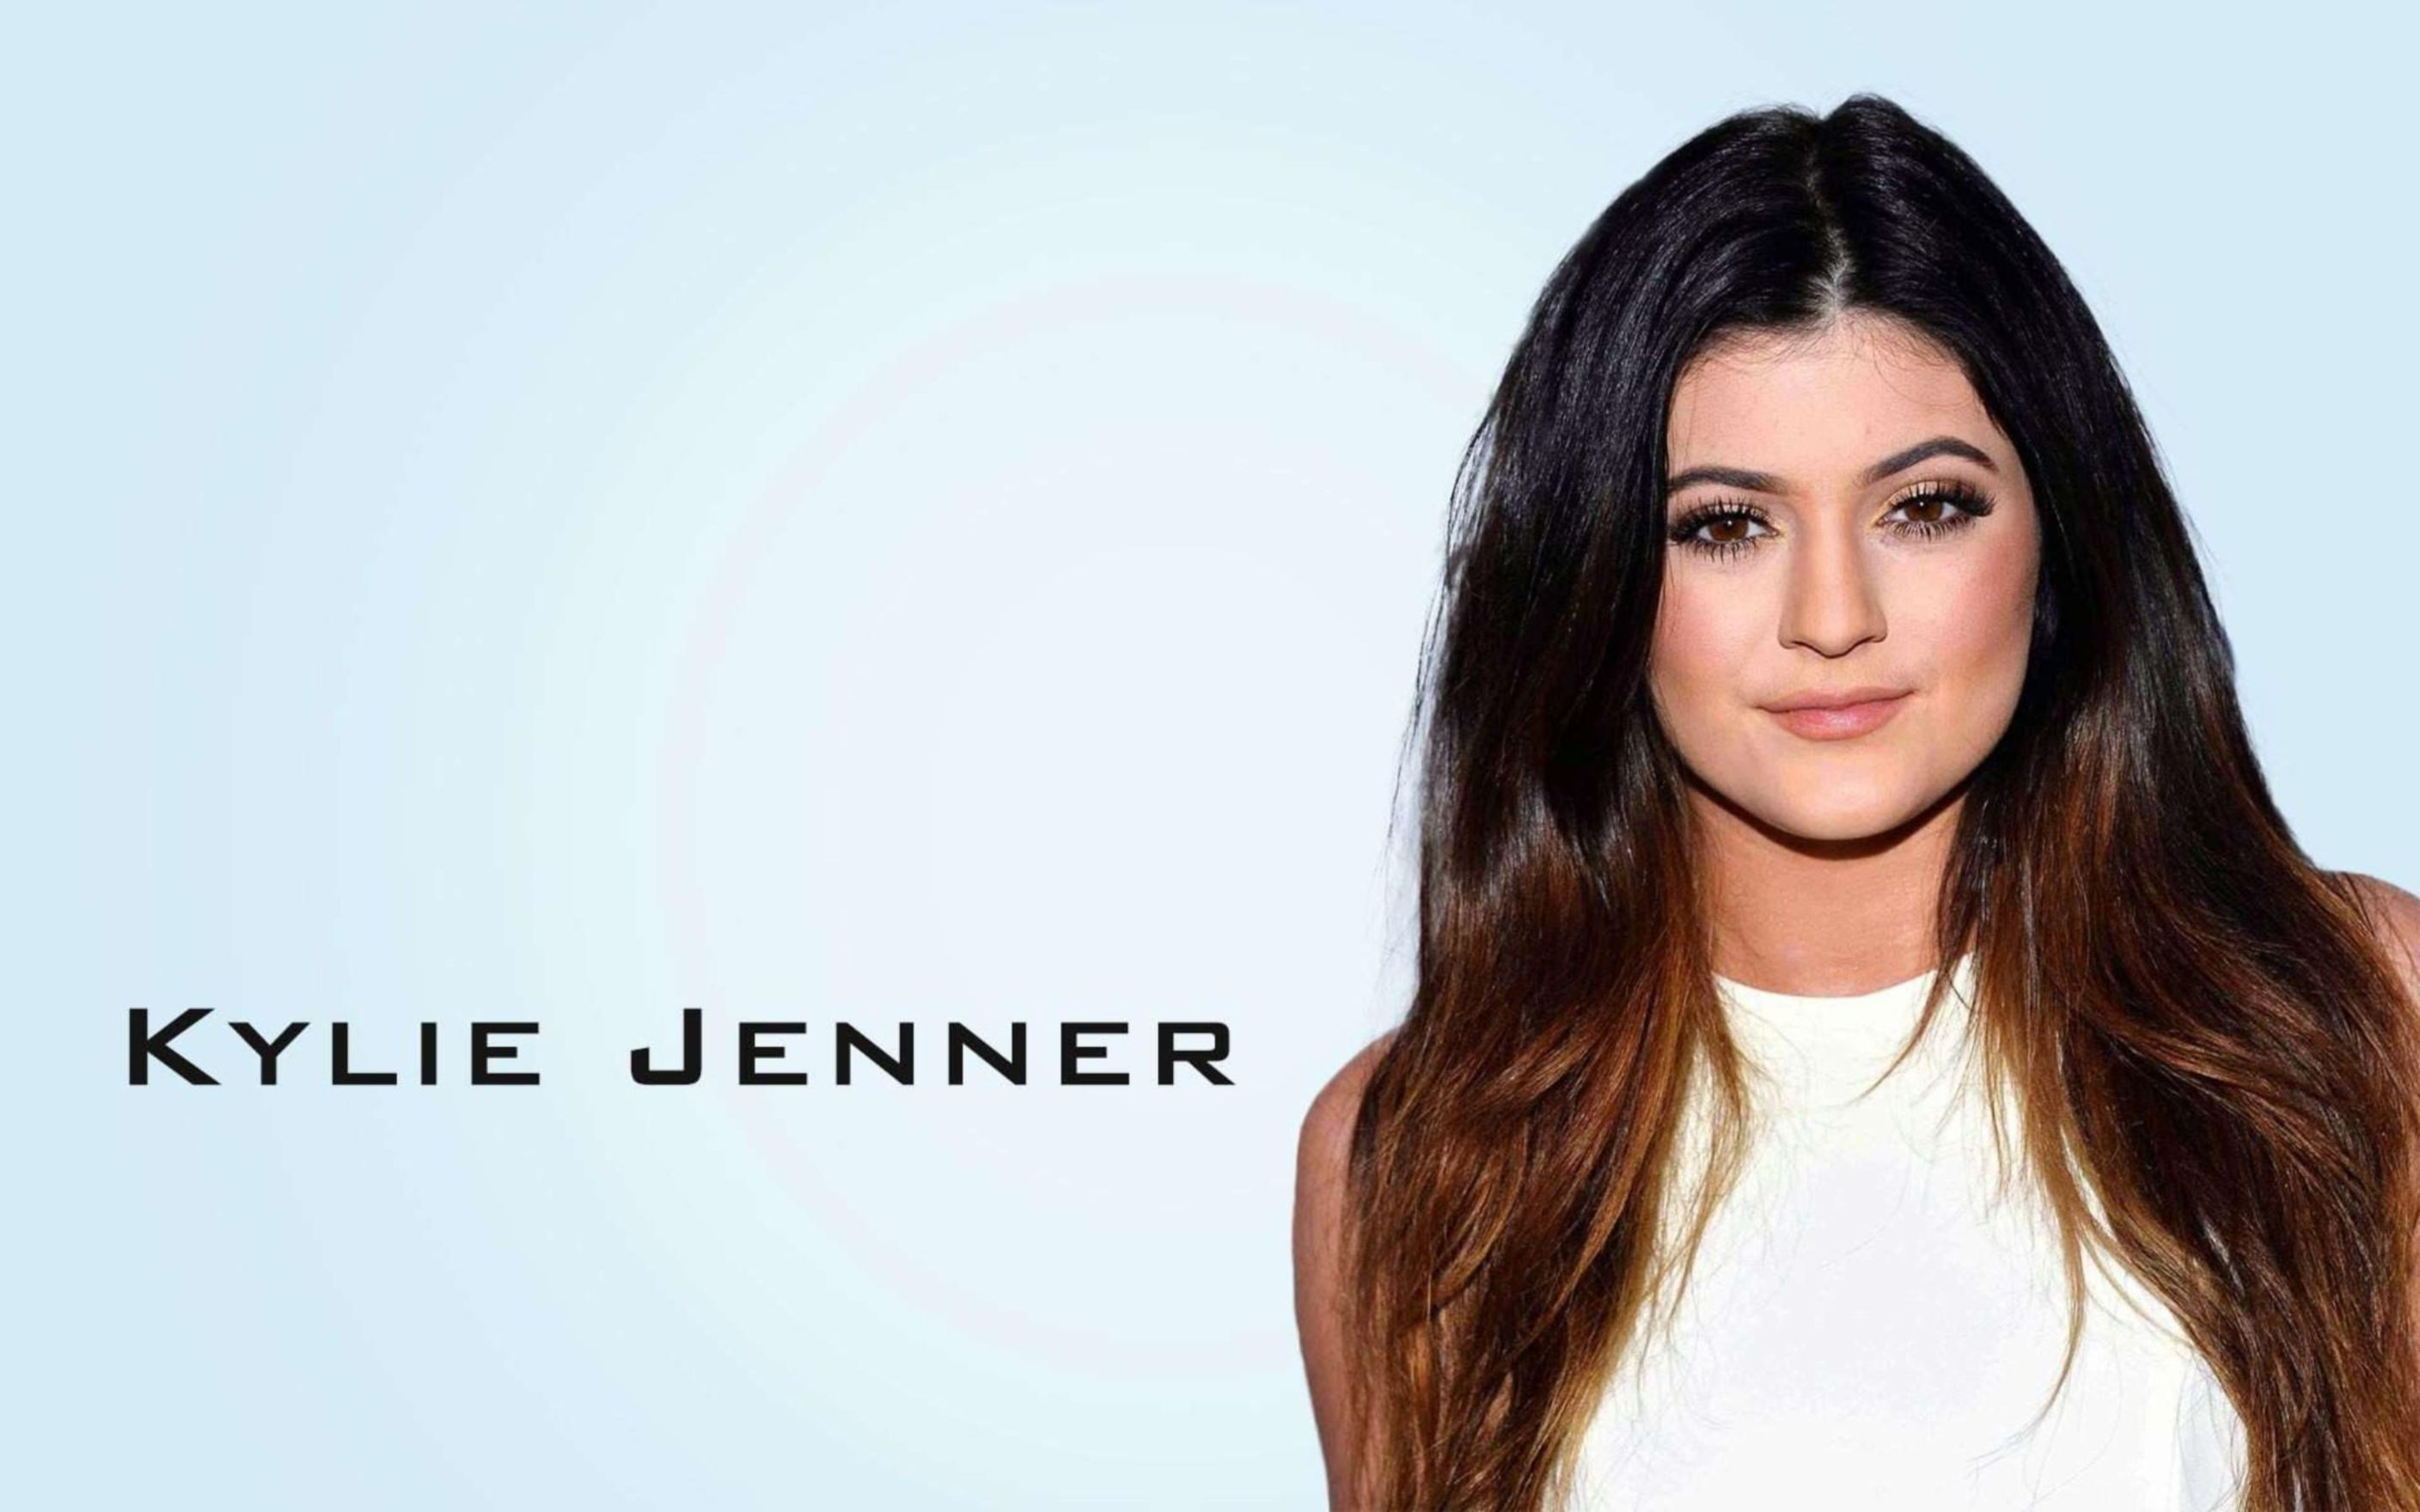 Download free HD Kylie Jenner Celebrity Wallpaper, image